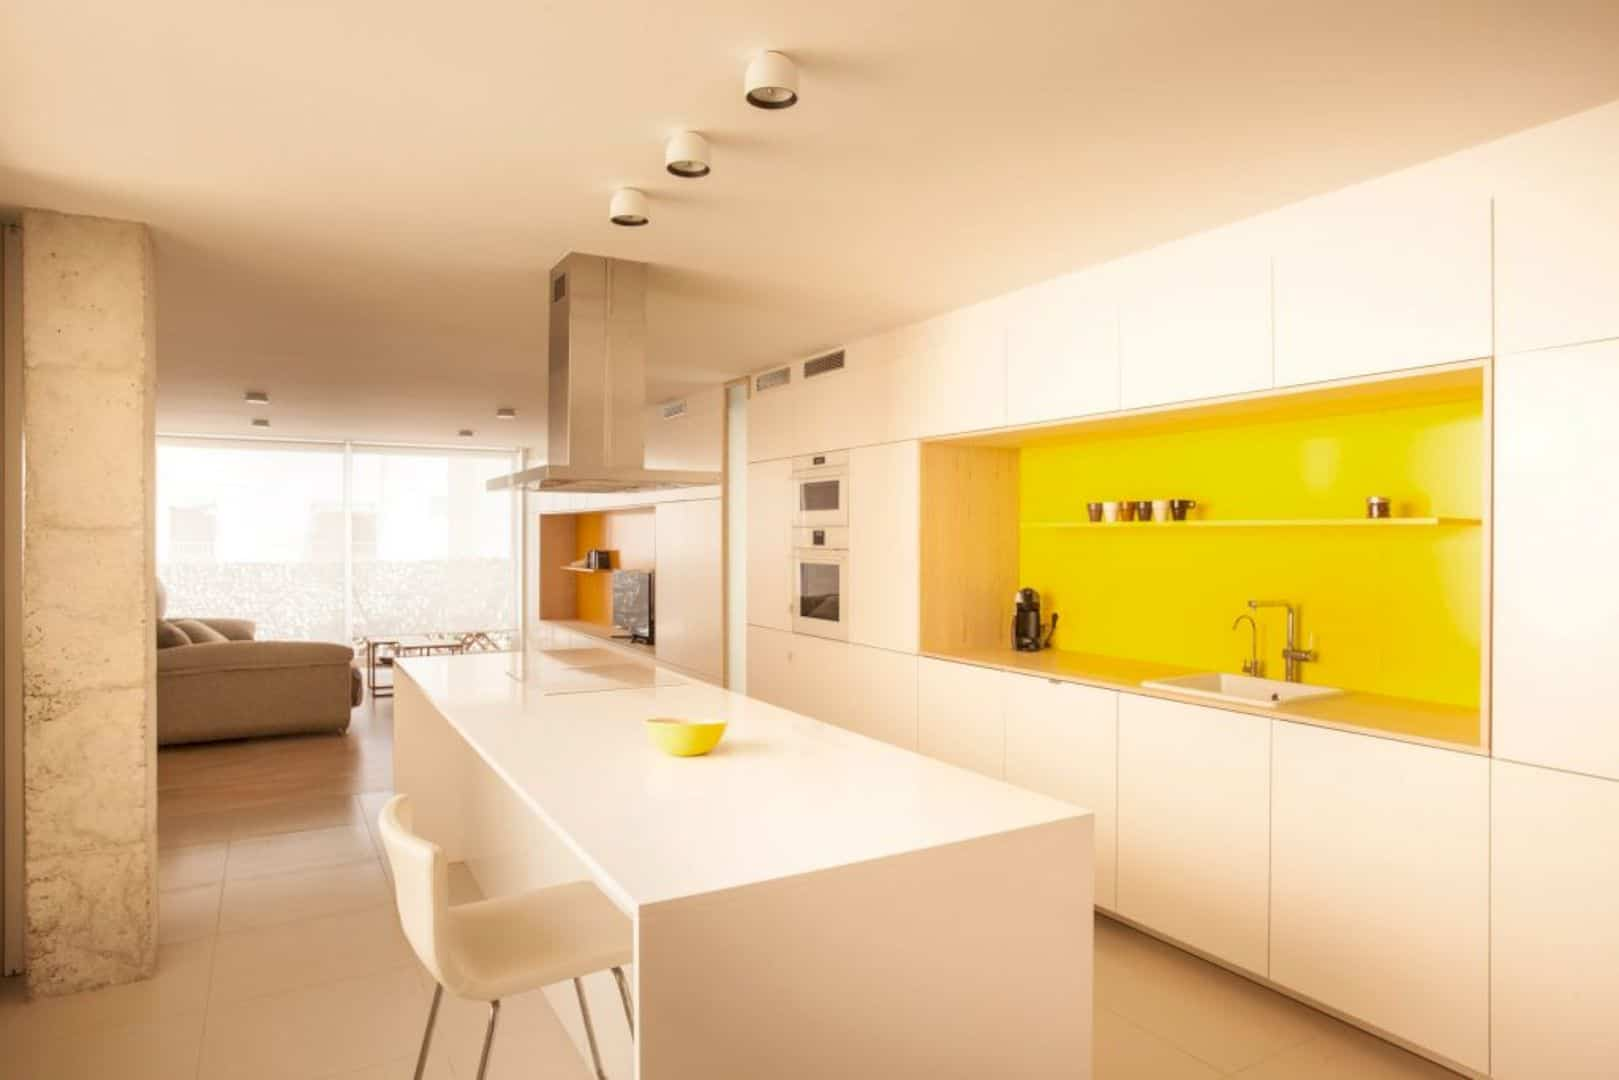 Alicante Apartment Renovation By Diego Lopez Fuster Arquitecture 6